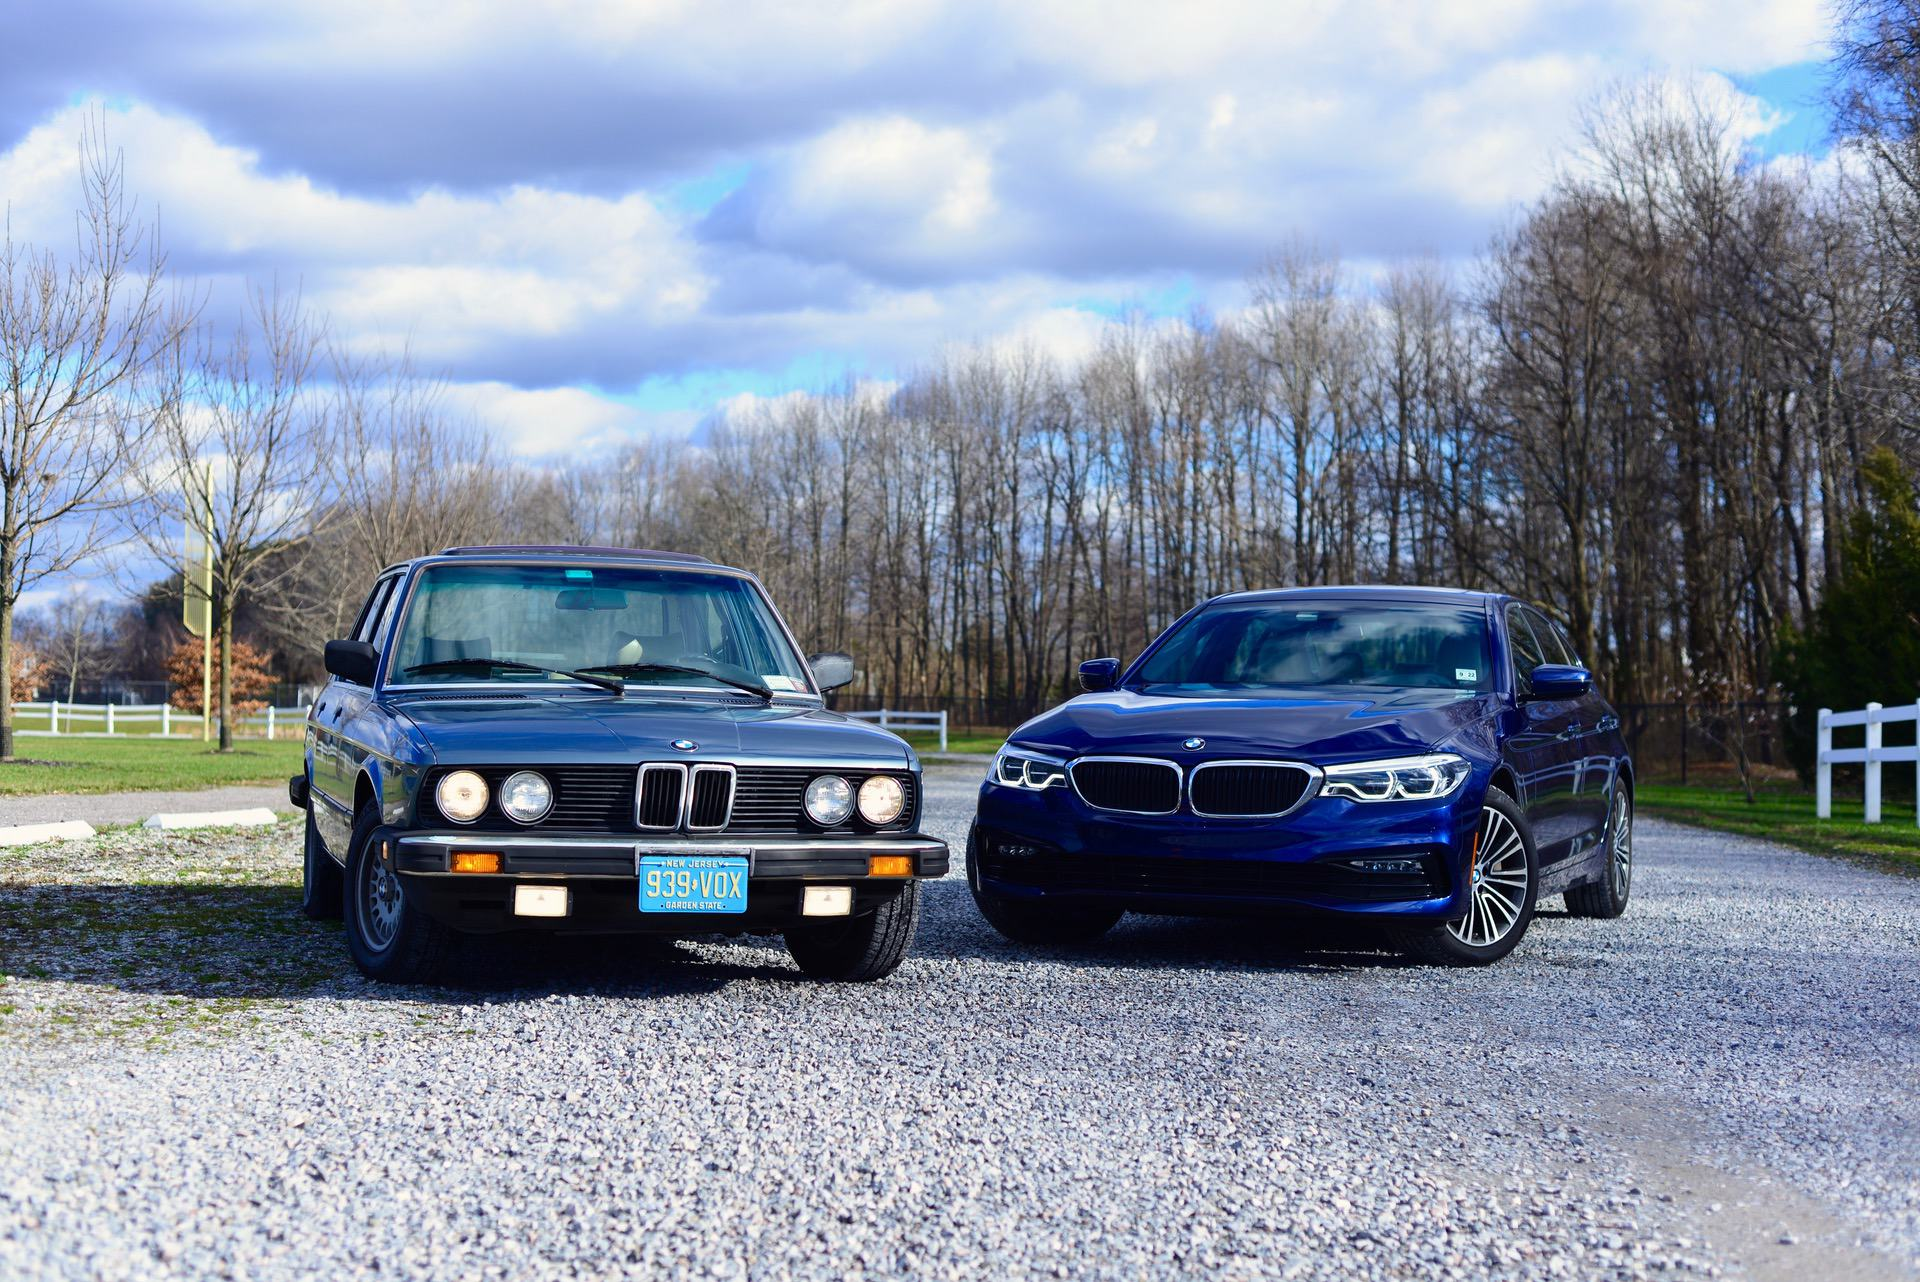 TEST DRIVE: 1983 BMW 528e (E28) vs BMW 540i (G30)